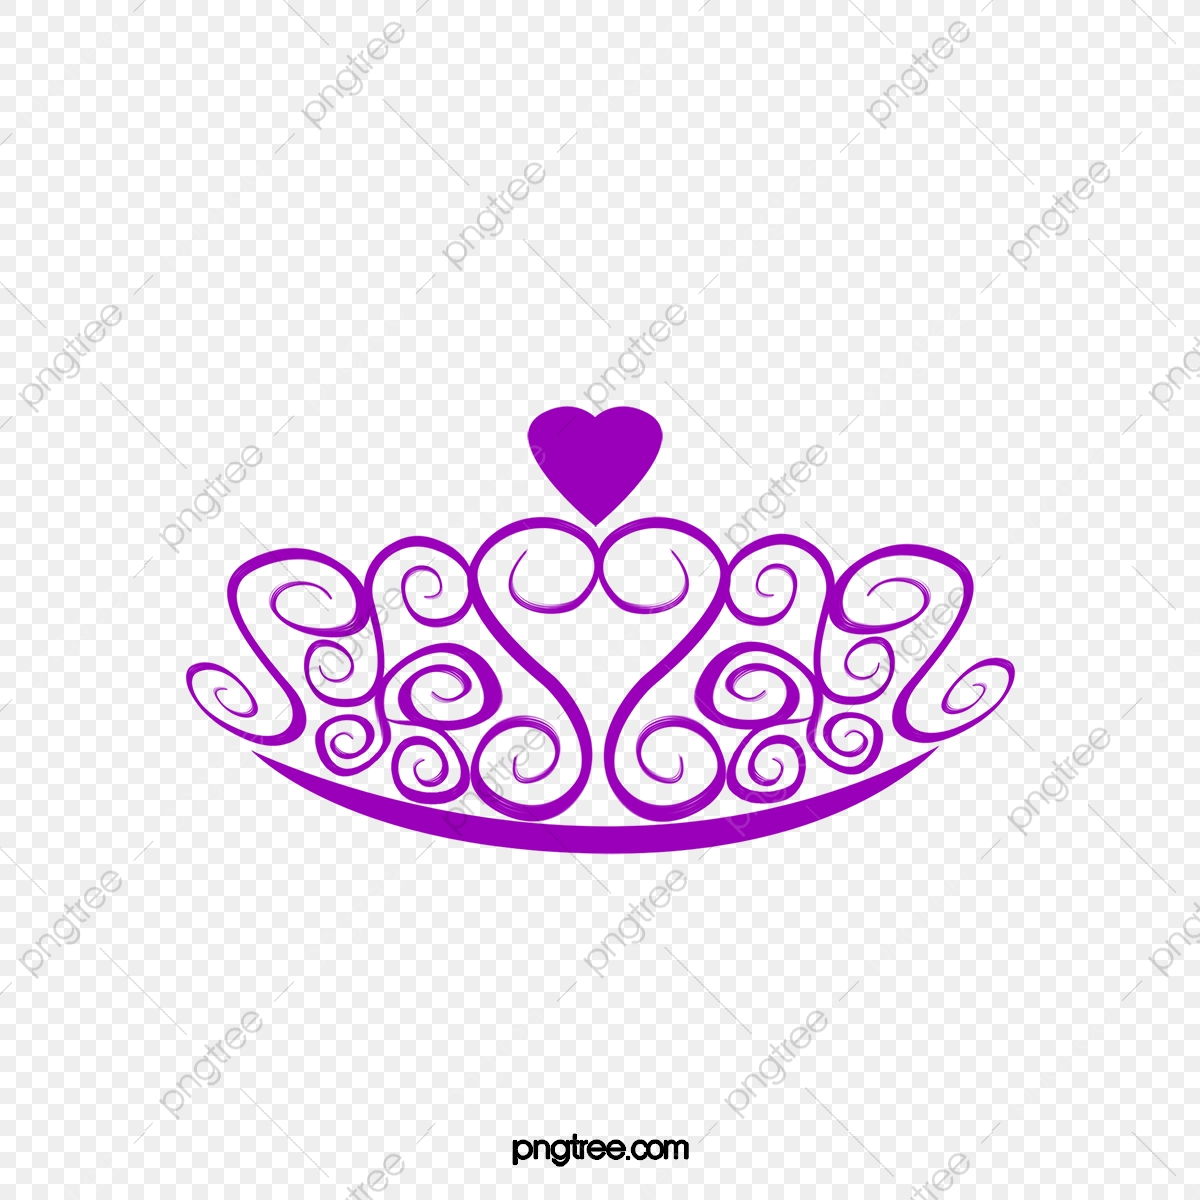 Purple Crown, Crown Clipart, Accessories PNG Transparent.